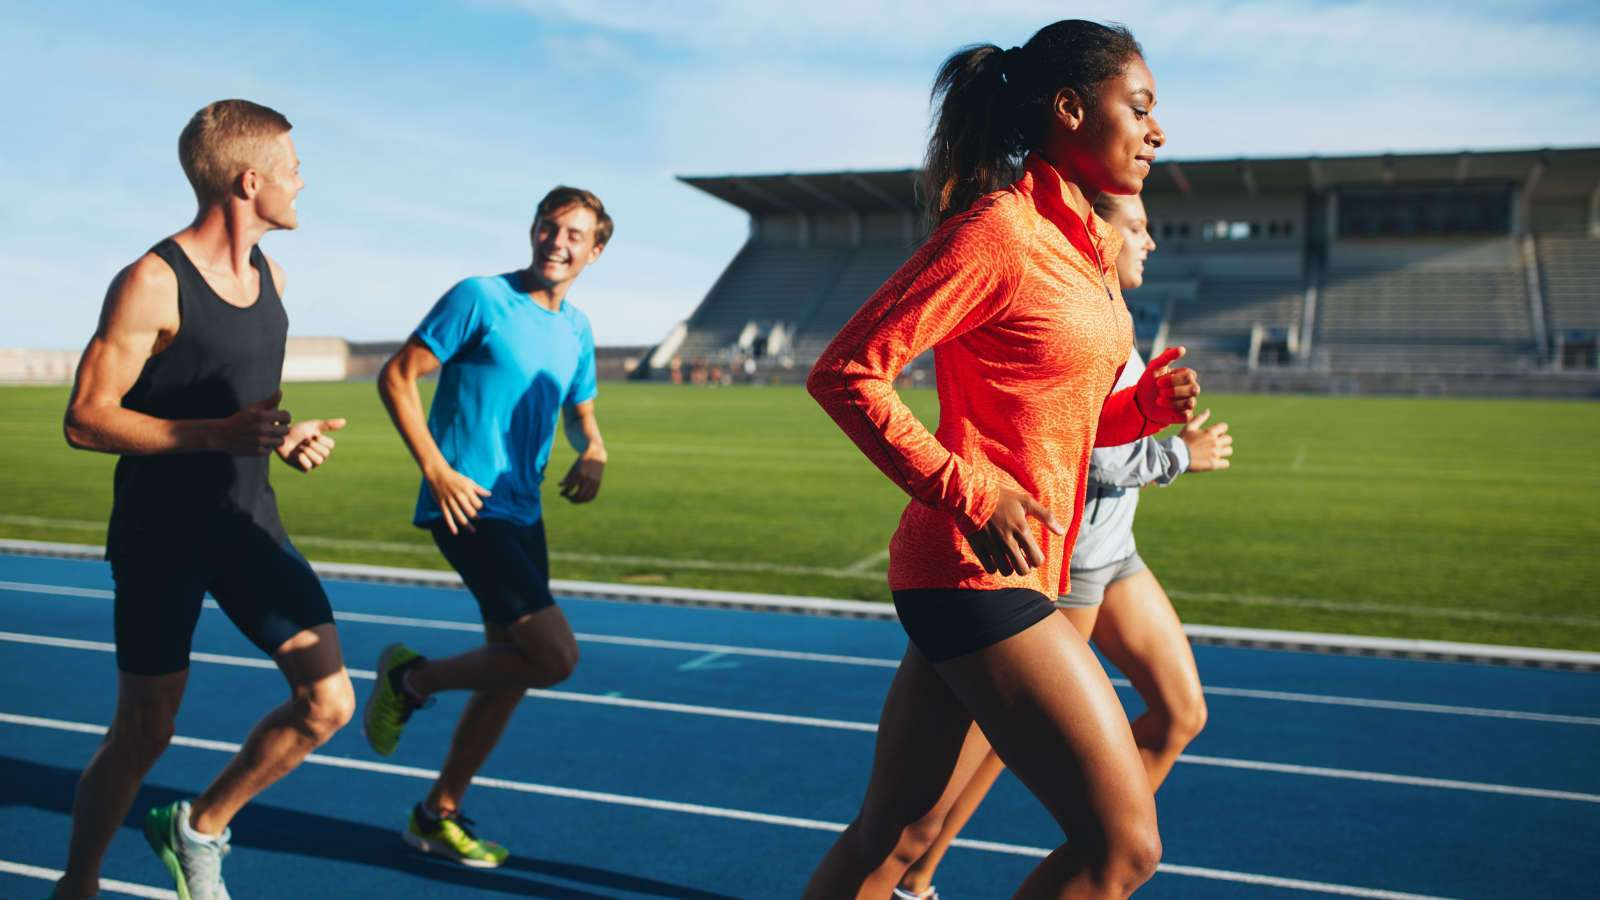 Training-for-Relay-Race